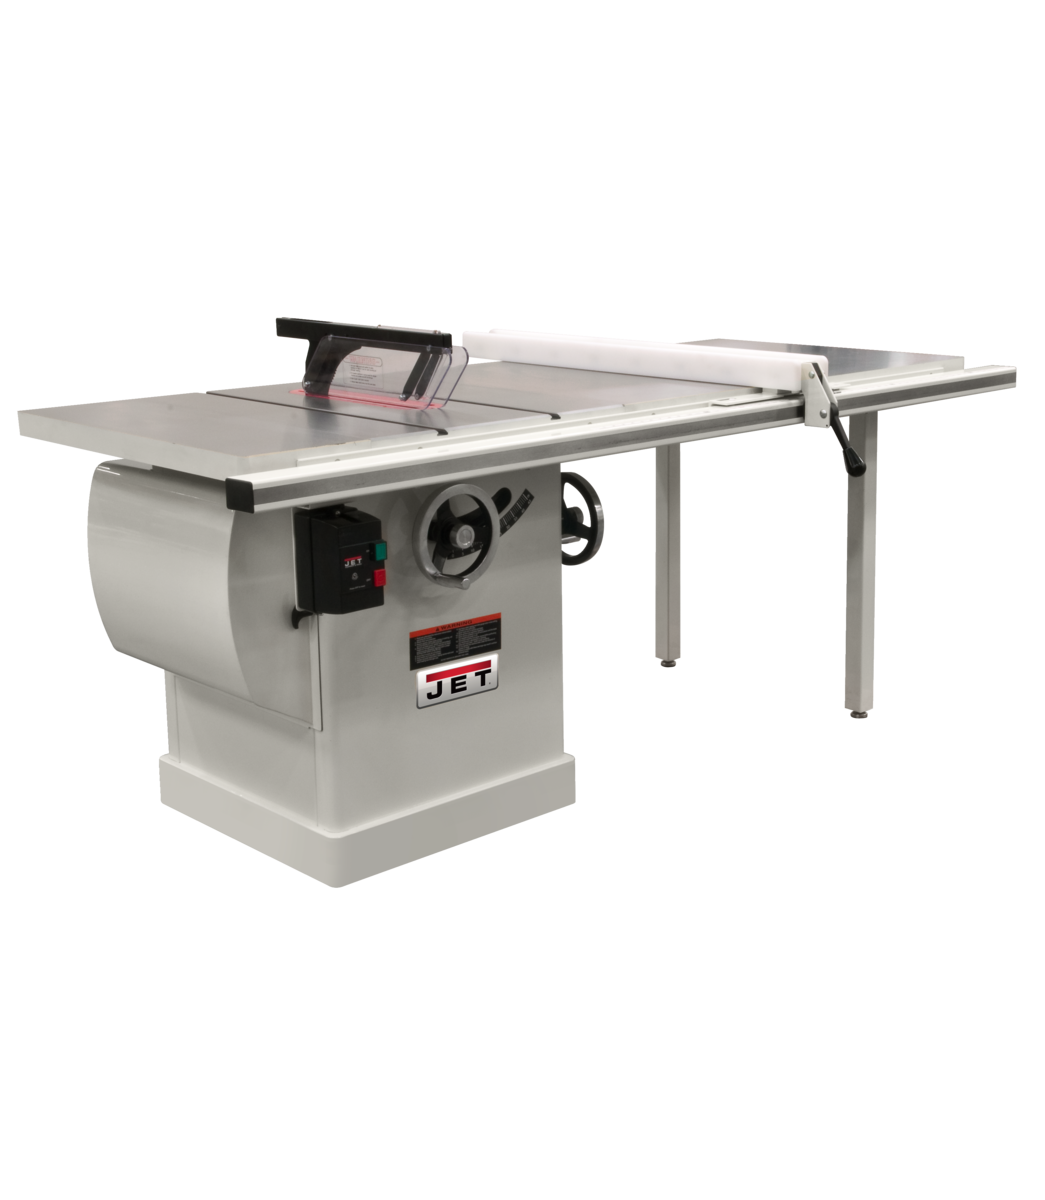 JTAS-12-DX TABLE SAW, 5HP 1PH